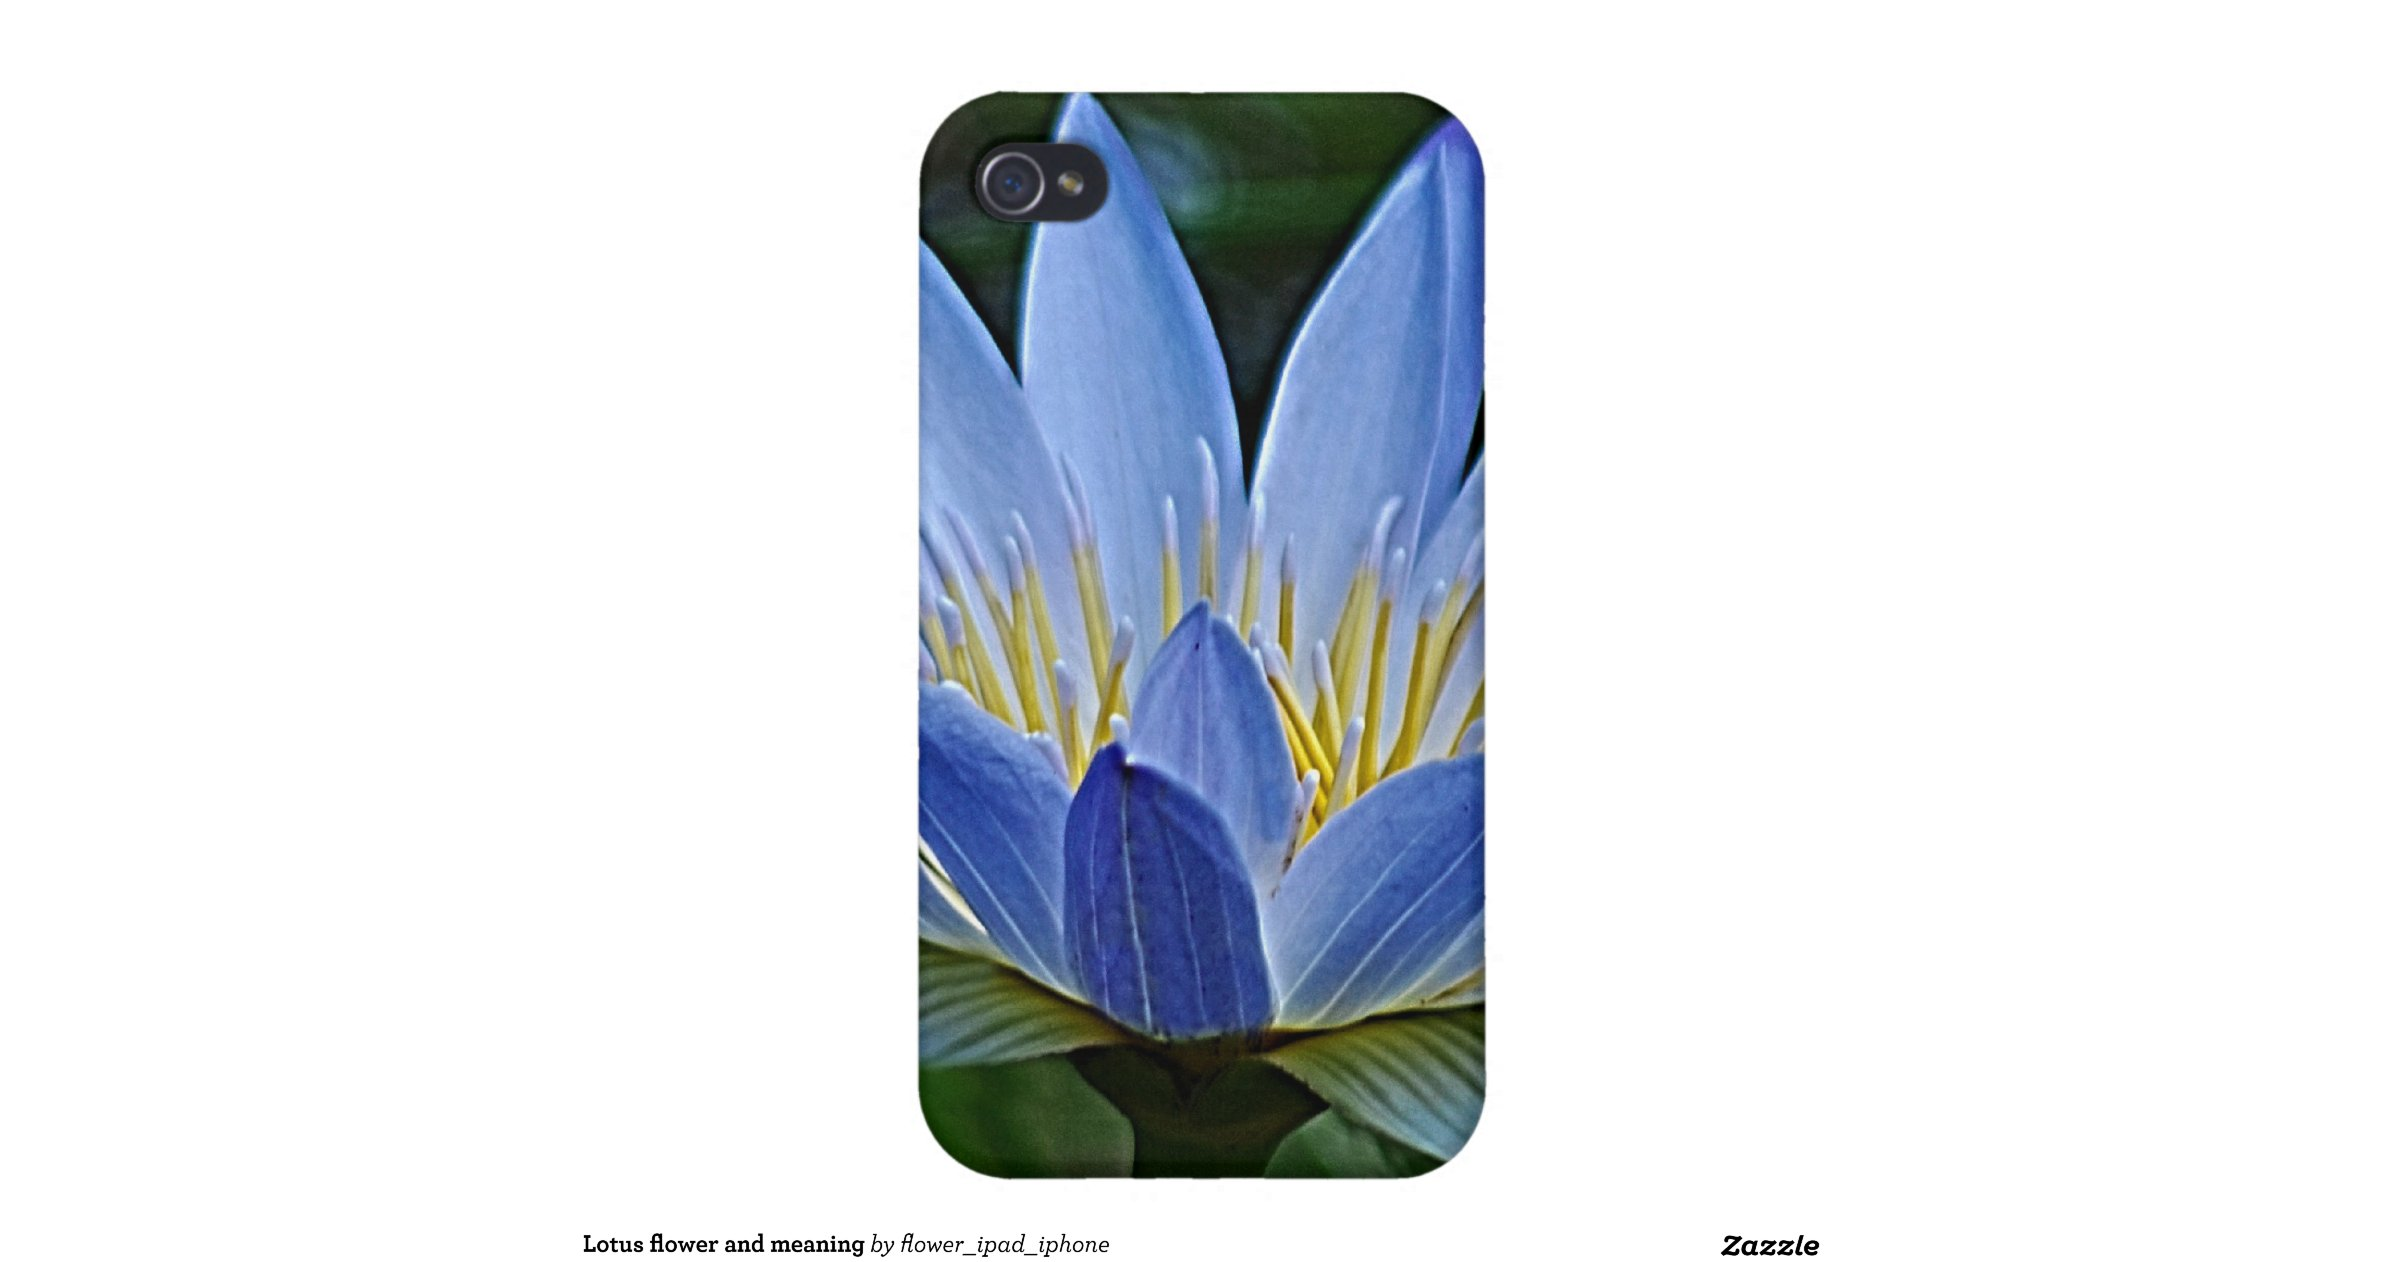 Lotus flower meaning flower meaning 2531703 bunkyofo flower symbolism amp spiritual meaning of flowers izmirmasajfo Gallery